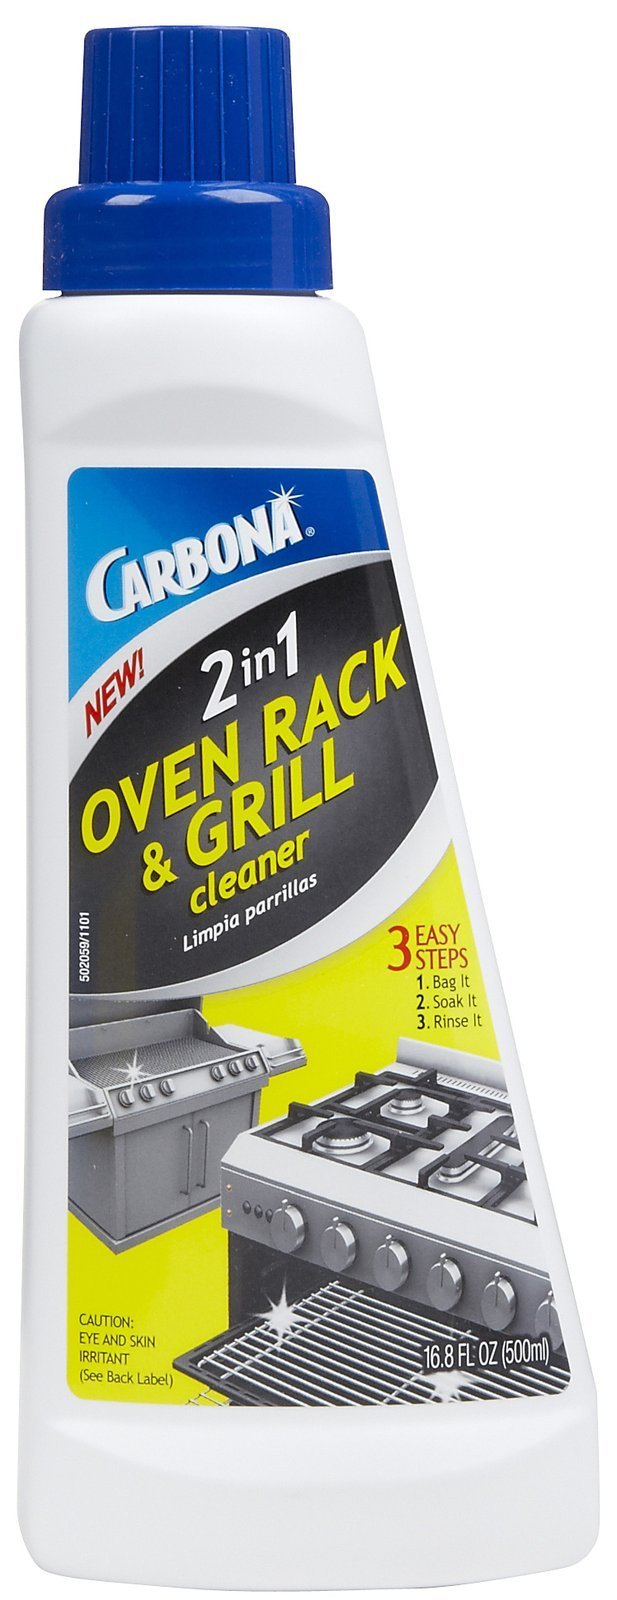 Carbona 2-In-1 Oven Rack And Grill Cleaner Bagged 16.8 Oz by Carbona